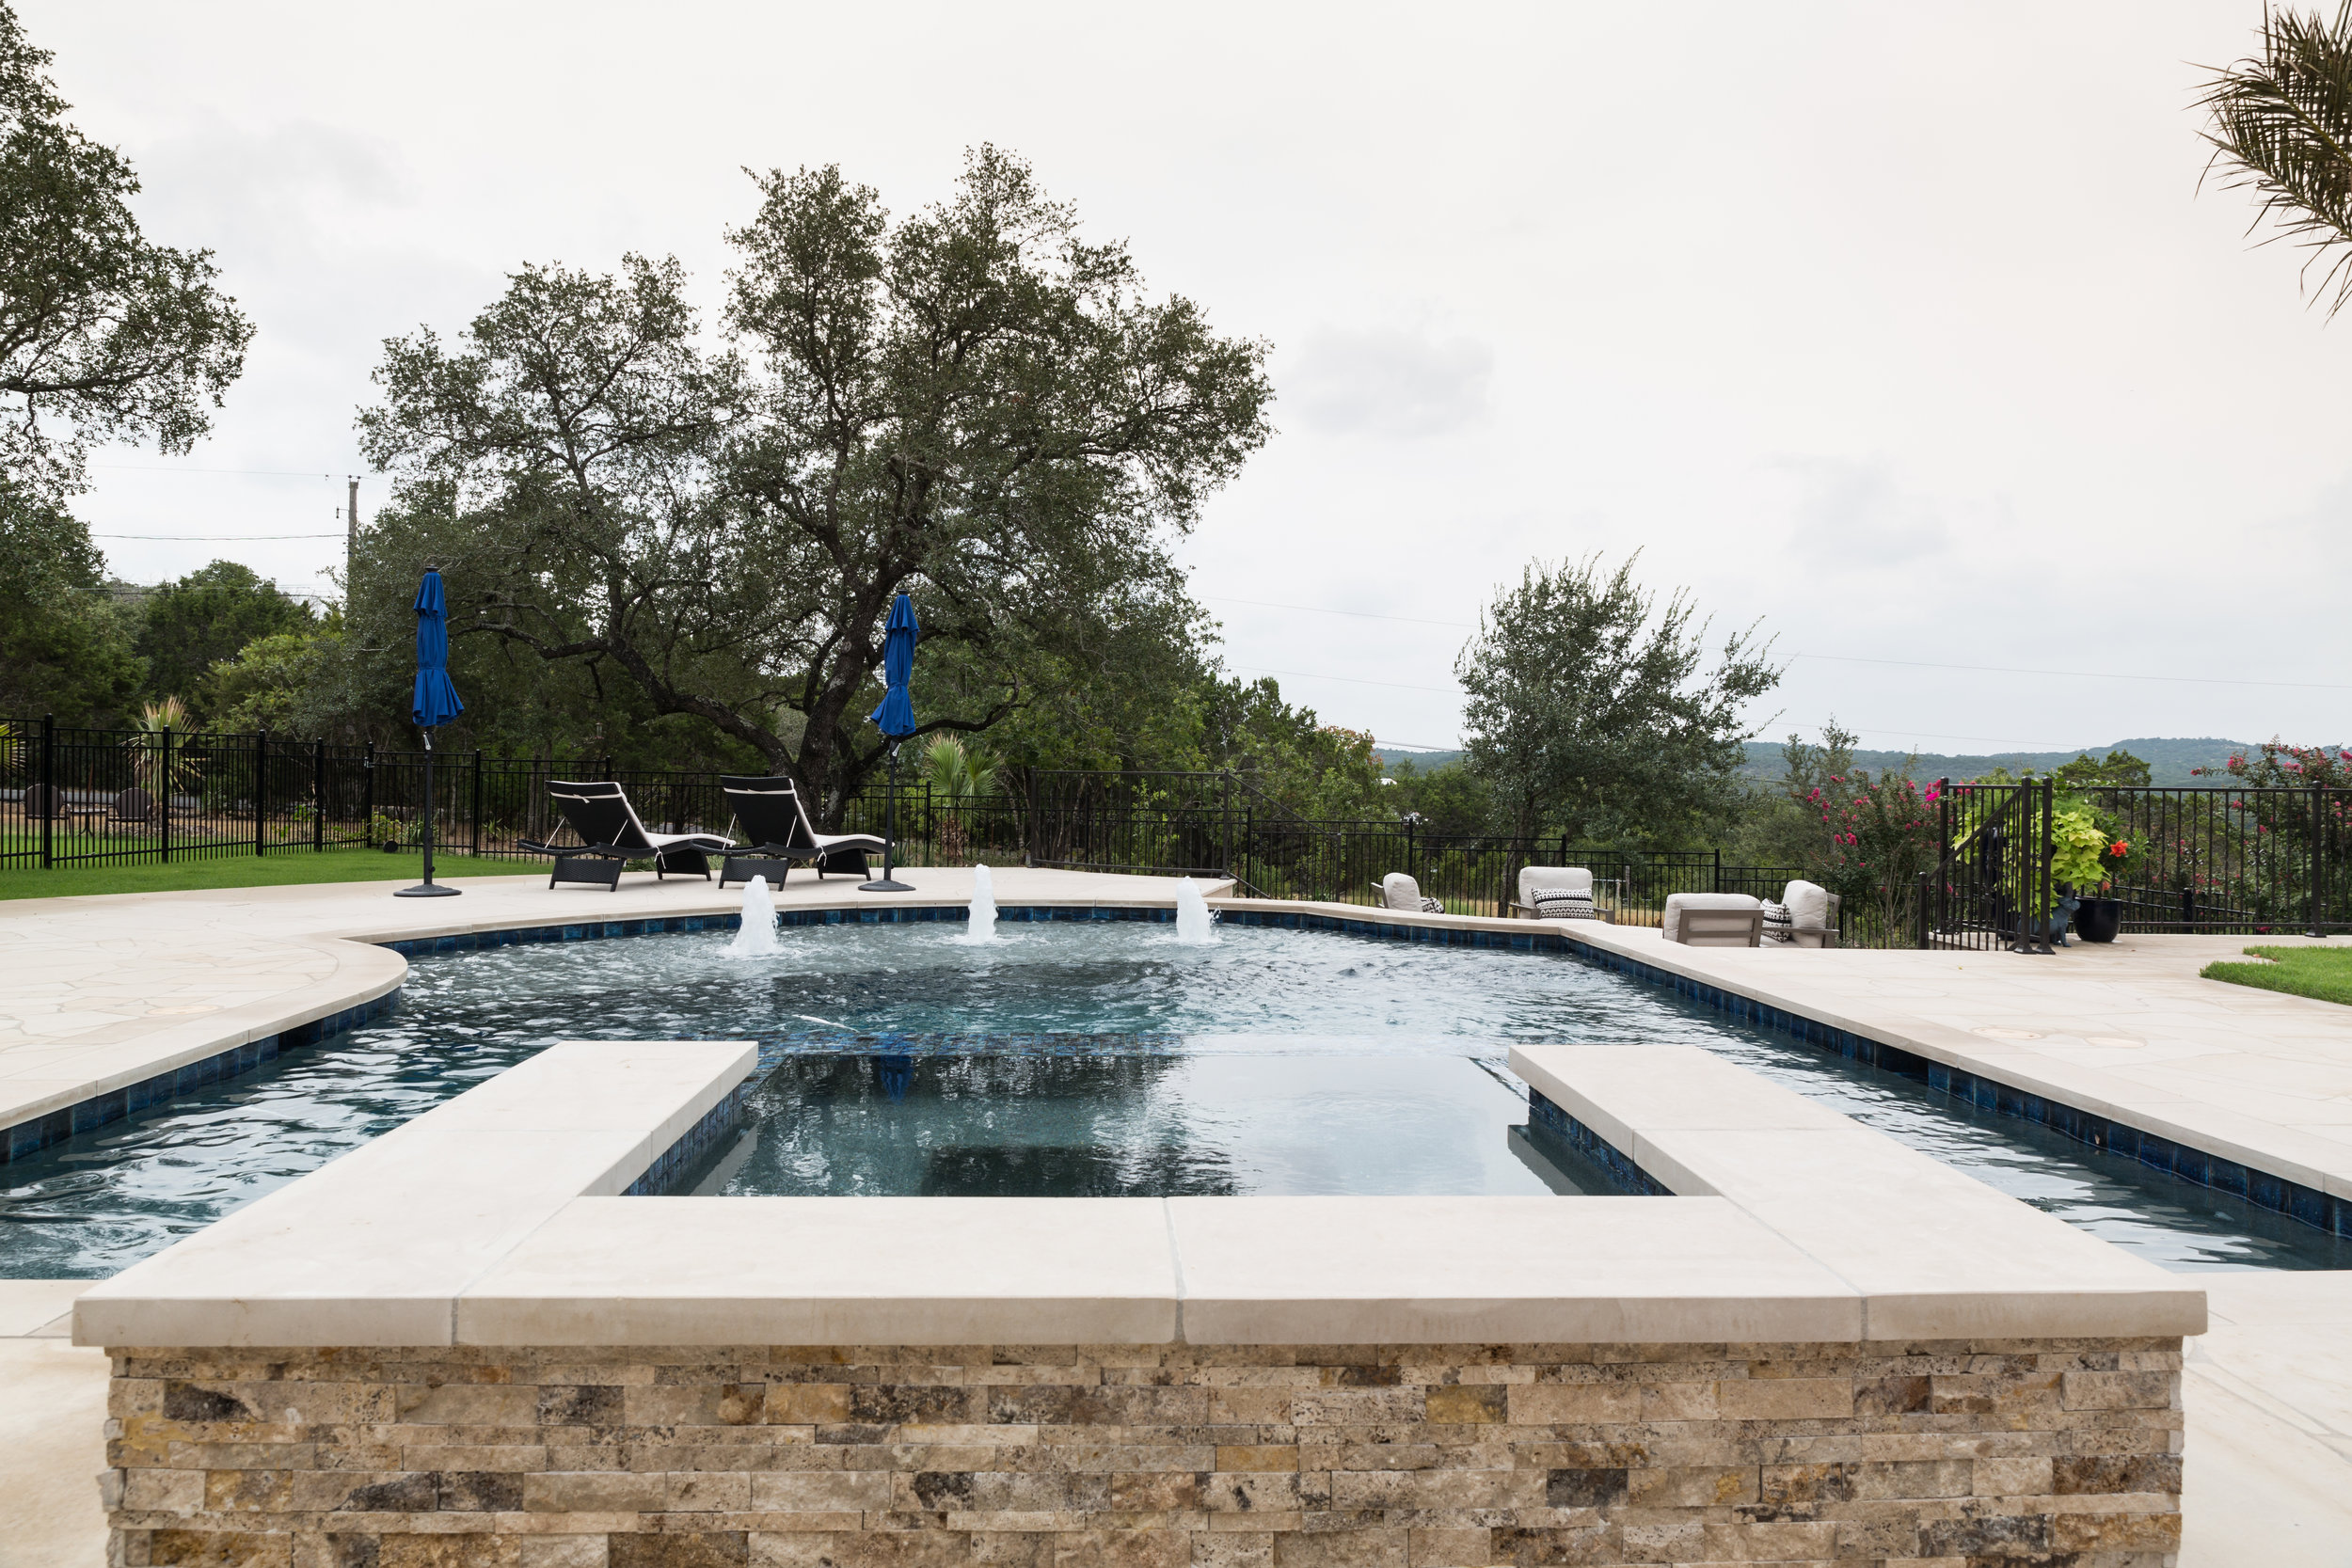 Pool with Fountains